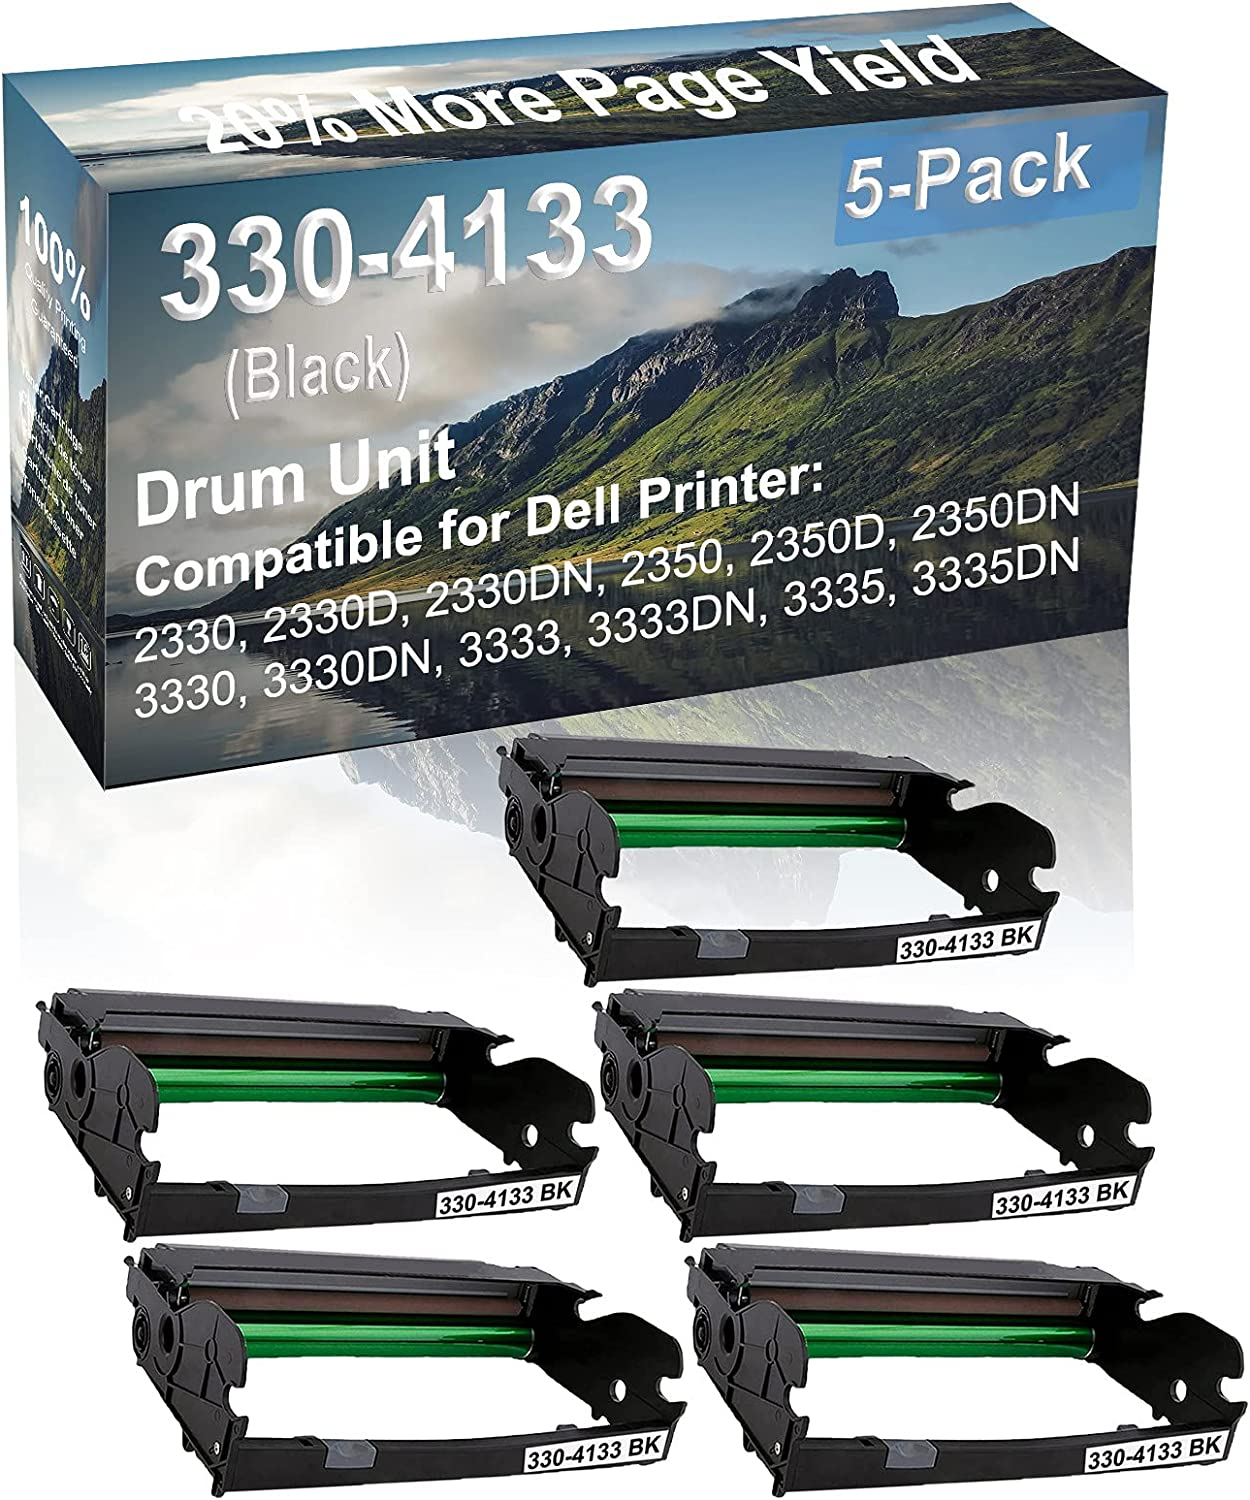 5-Pack Compatible Drum Unit (Black) Replacement for Dell 330-4133 Drum Kit use for Dell 3333, 3333DN, 3335, 3335DN Printer